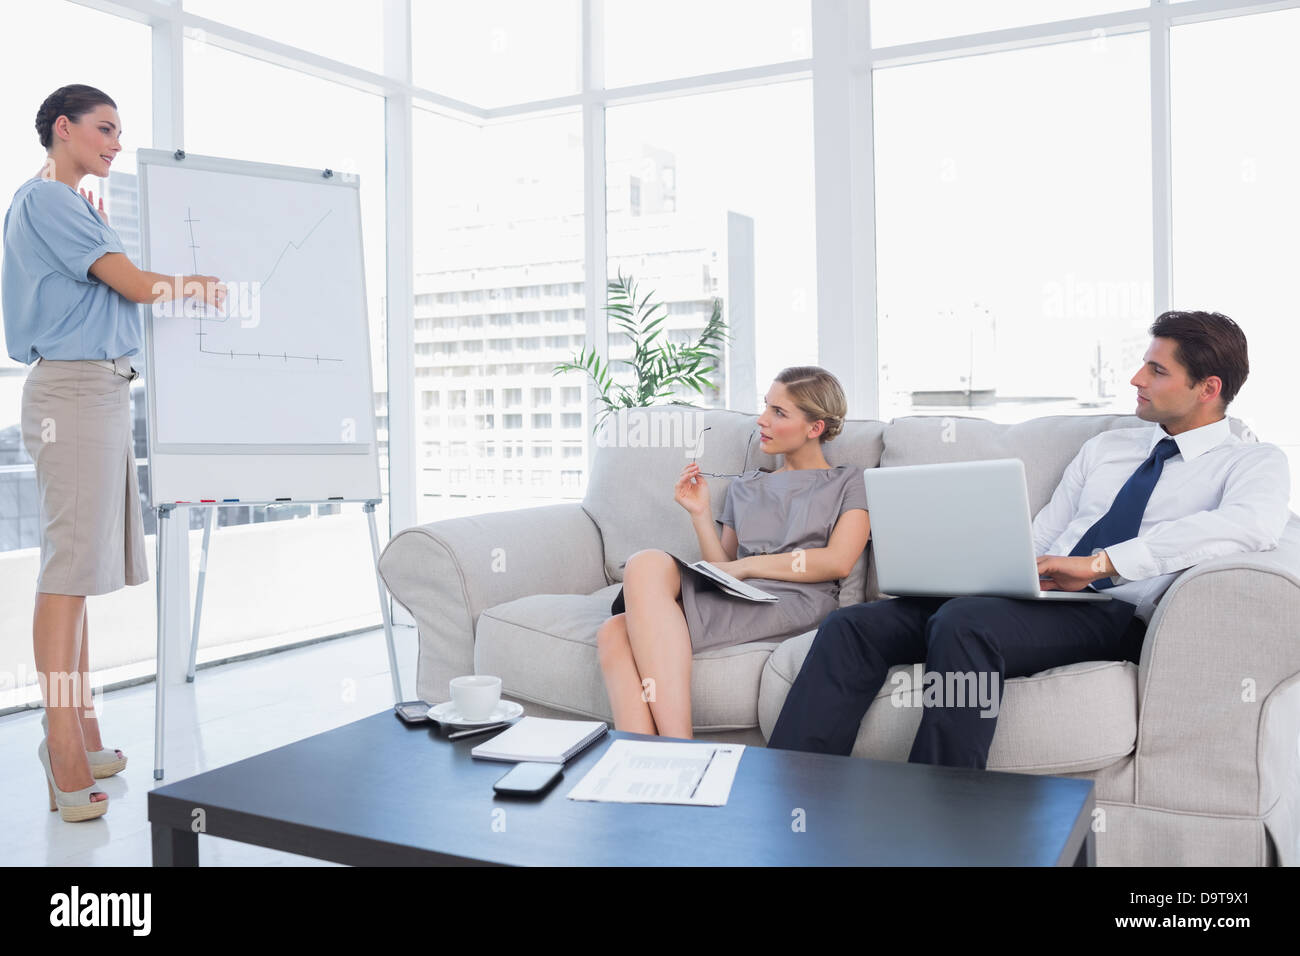 Business woman presenting something on a whiteboard - Stock Image